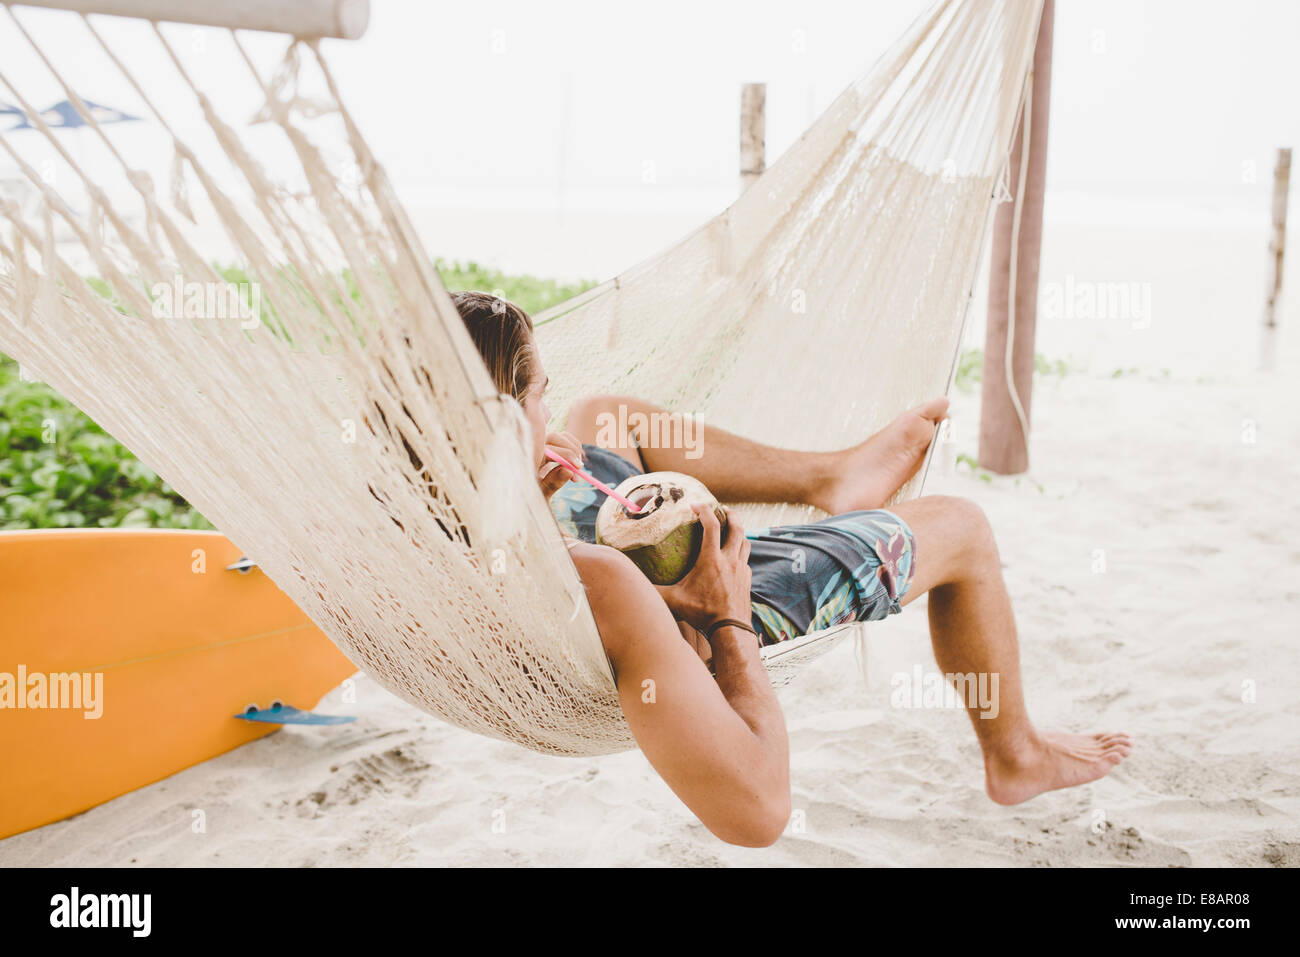 Man enjoying coconut water in hammock on beach - Stock Image